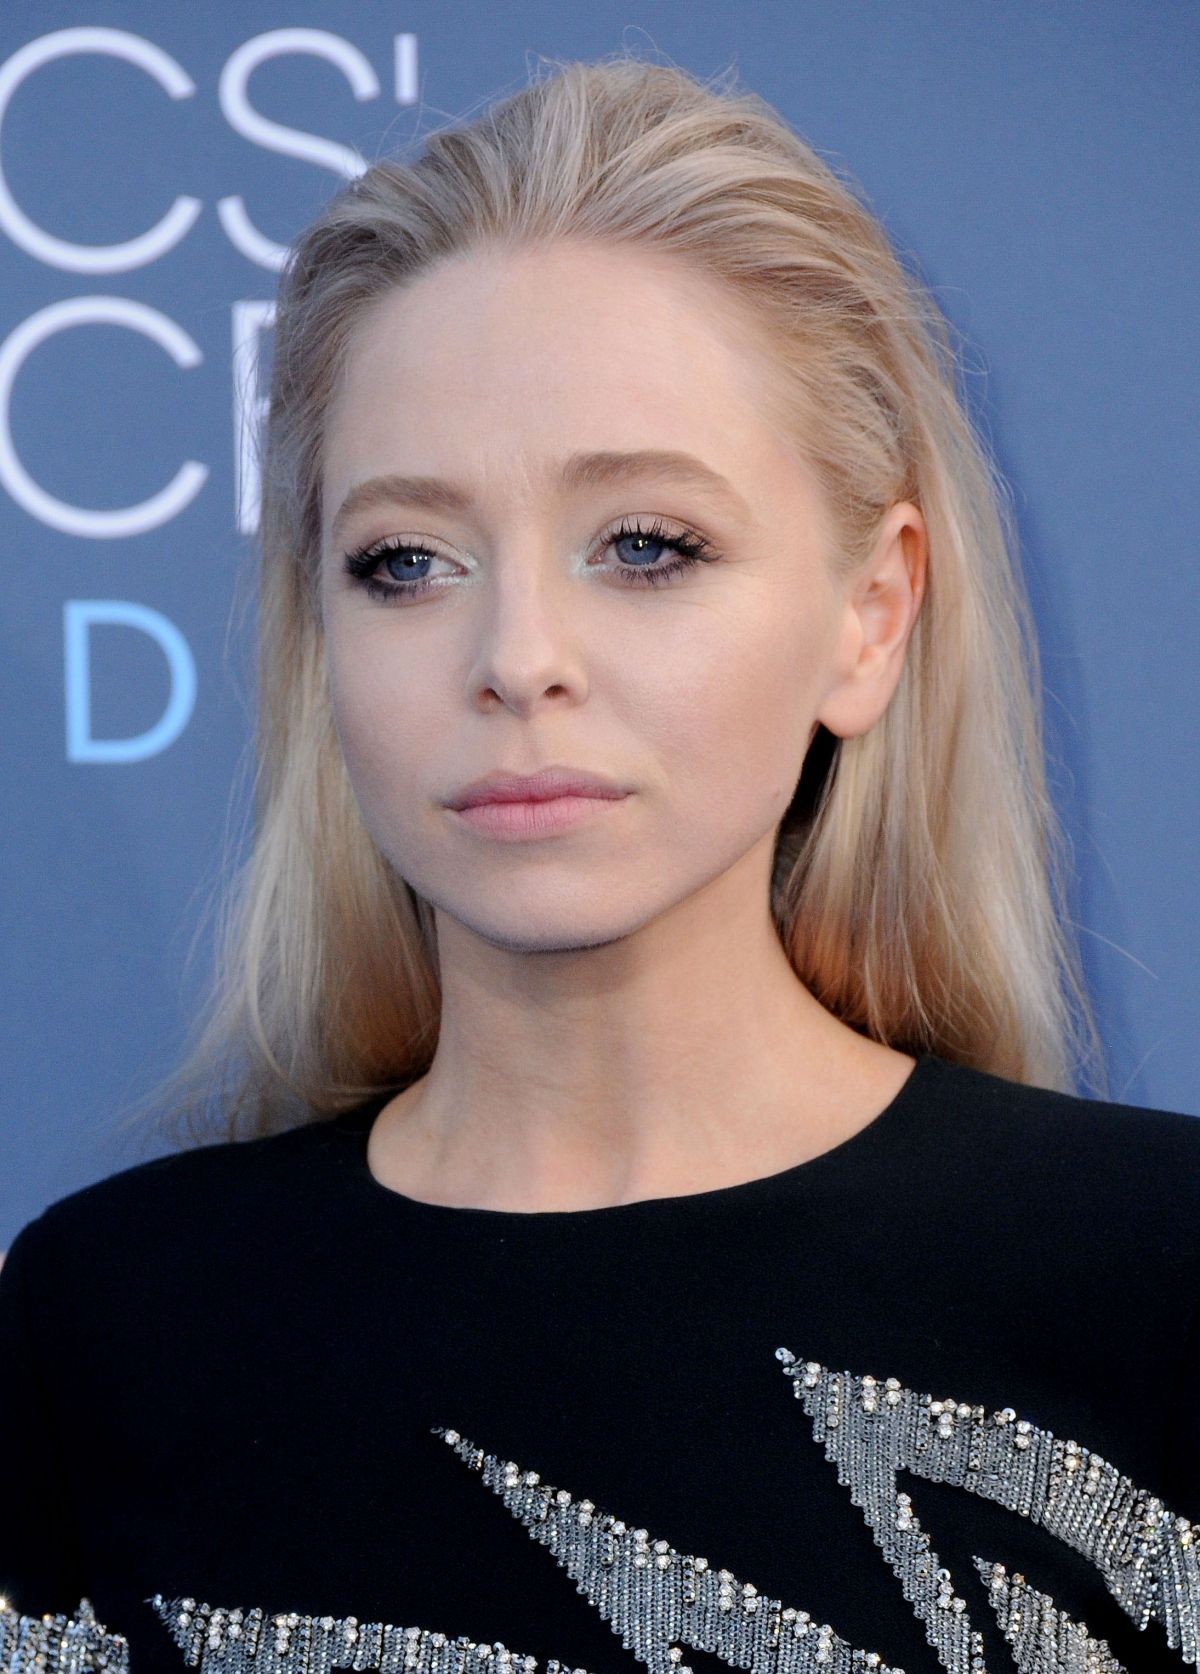 2019 Portia Doubleday nudes (21 photo), Sexy, Leaked, Boobs, lingerie 2015